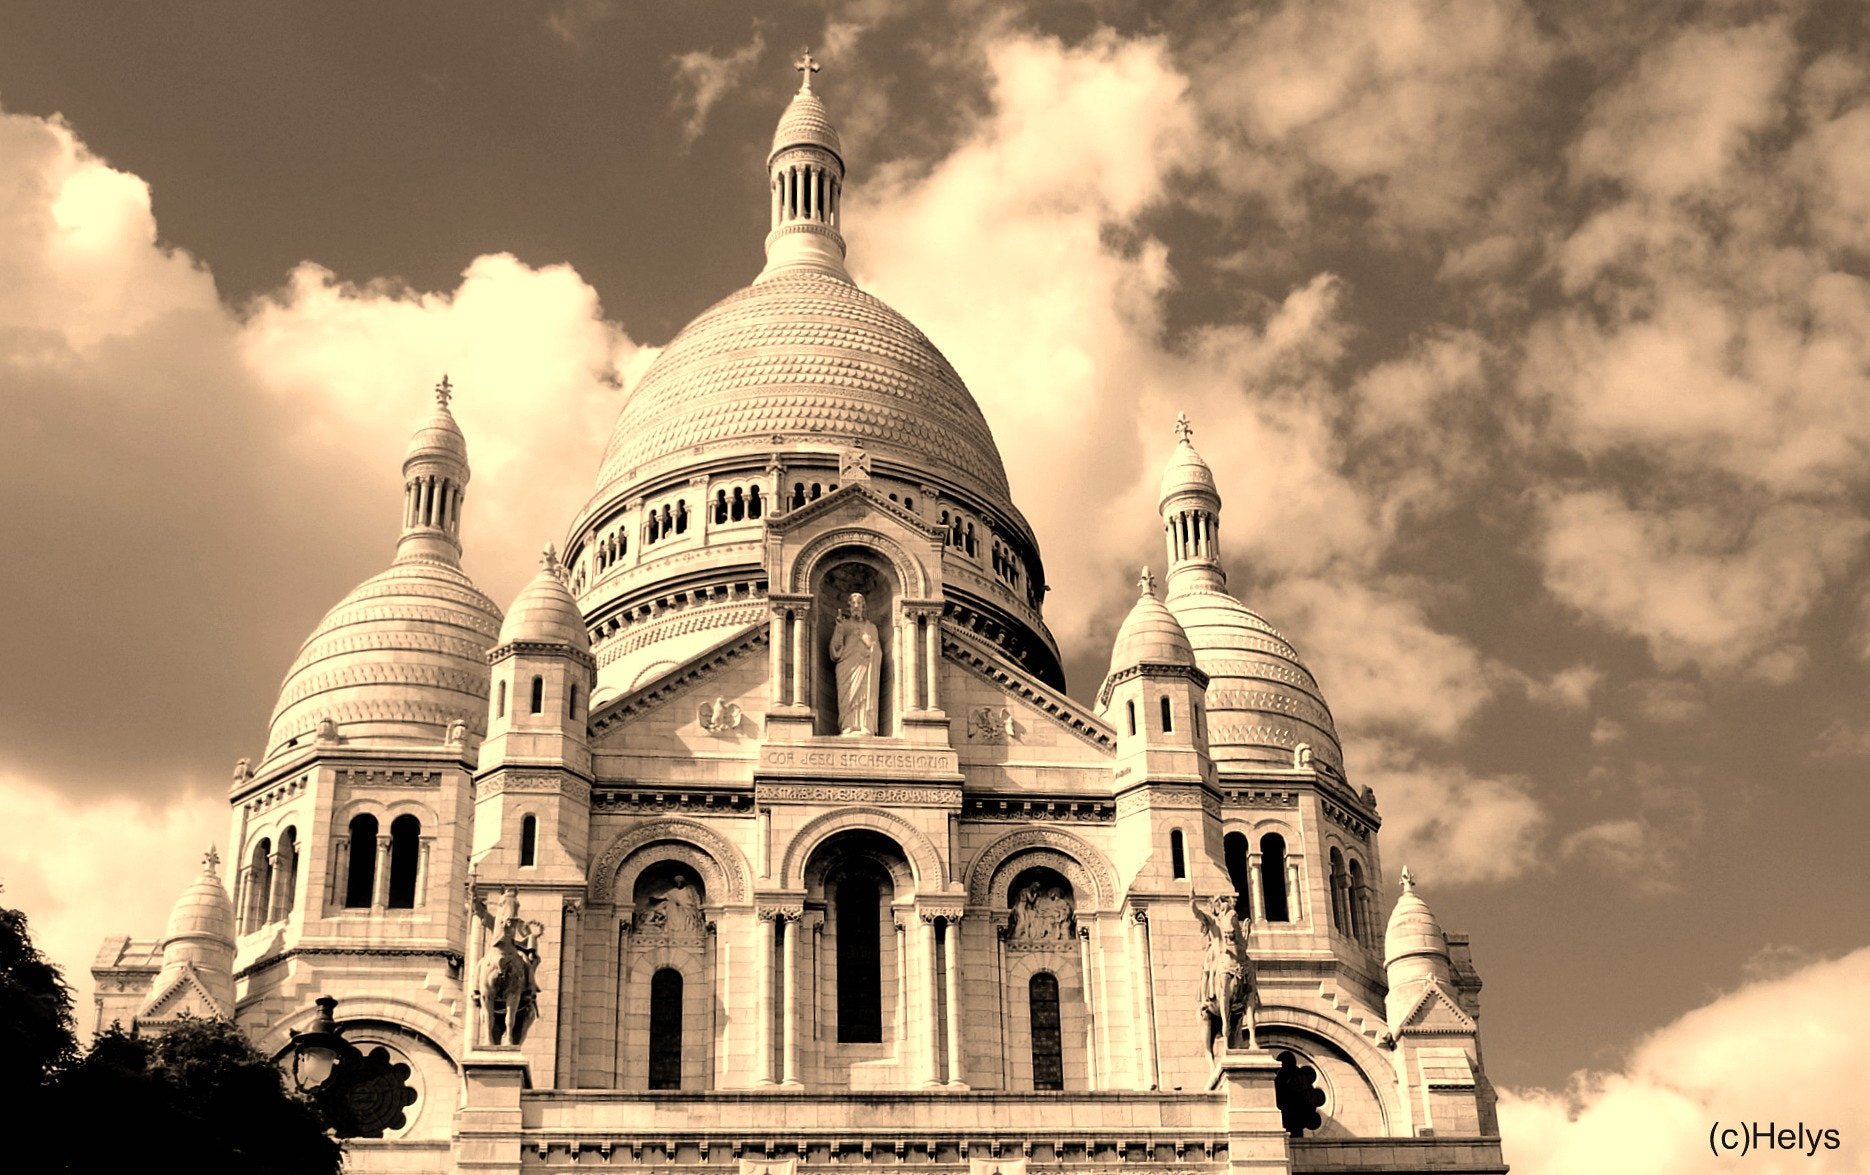 Photograph Basilic Montmartre Sepia by Helys OlgaH on 500px